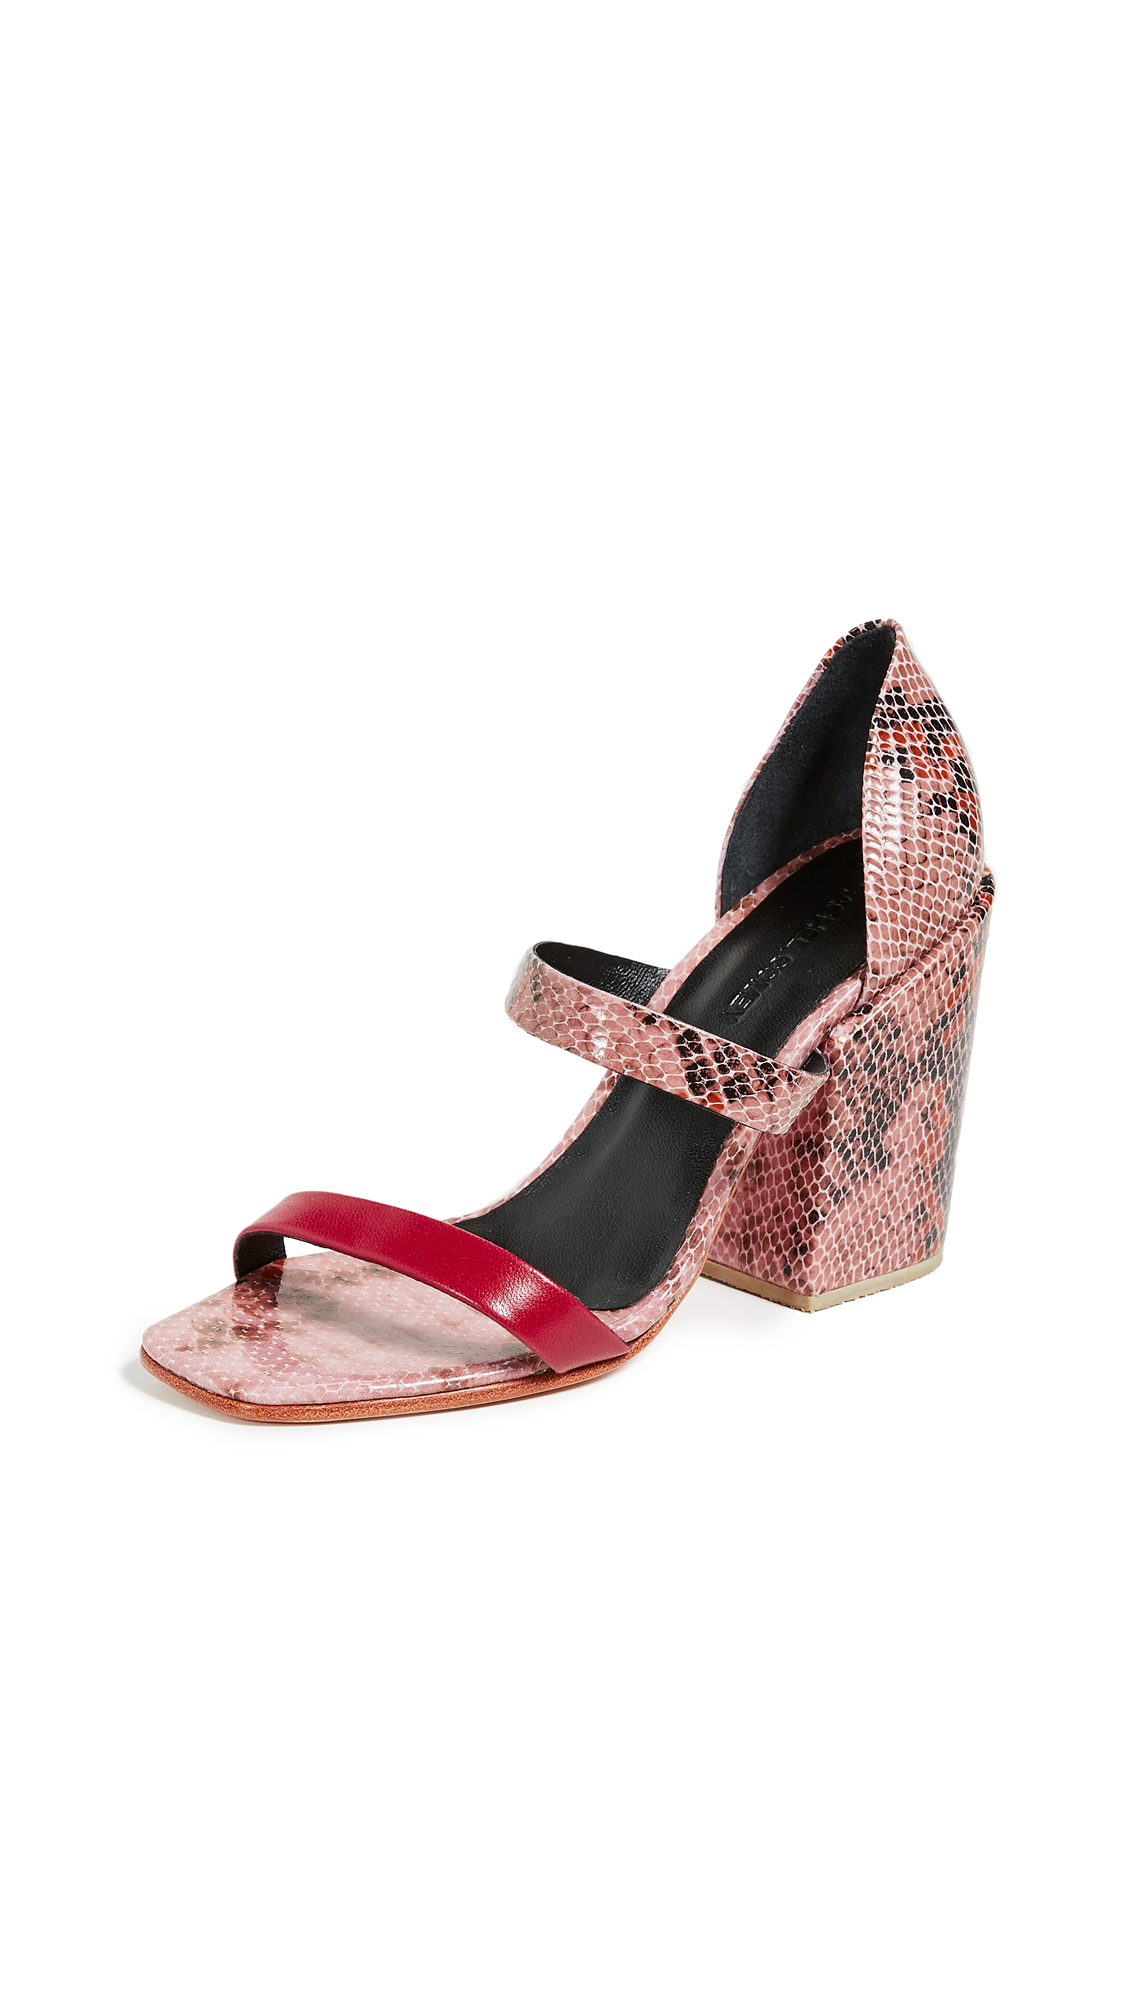 Rachel Comey Lico Sandals - Pink Snake